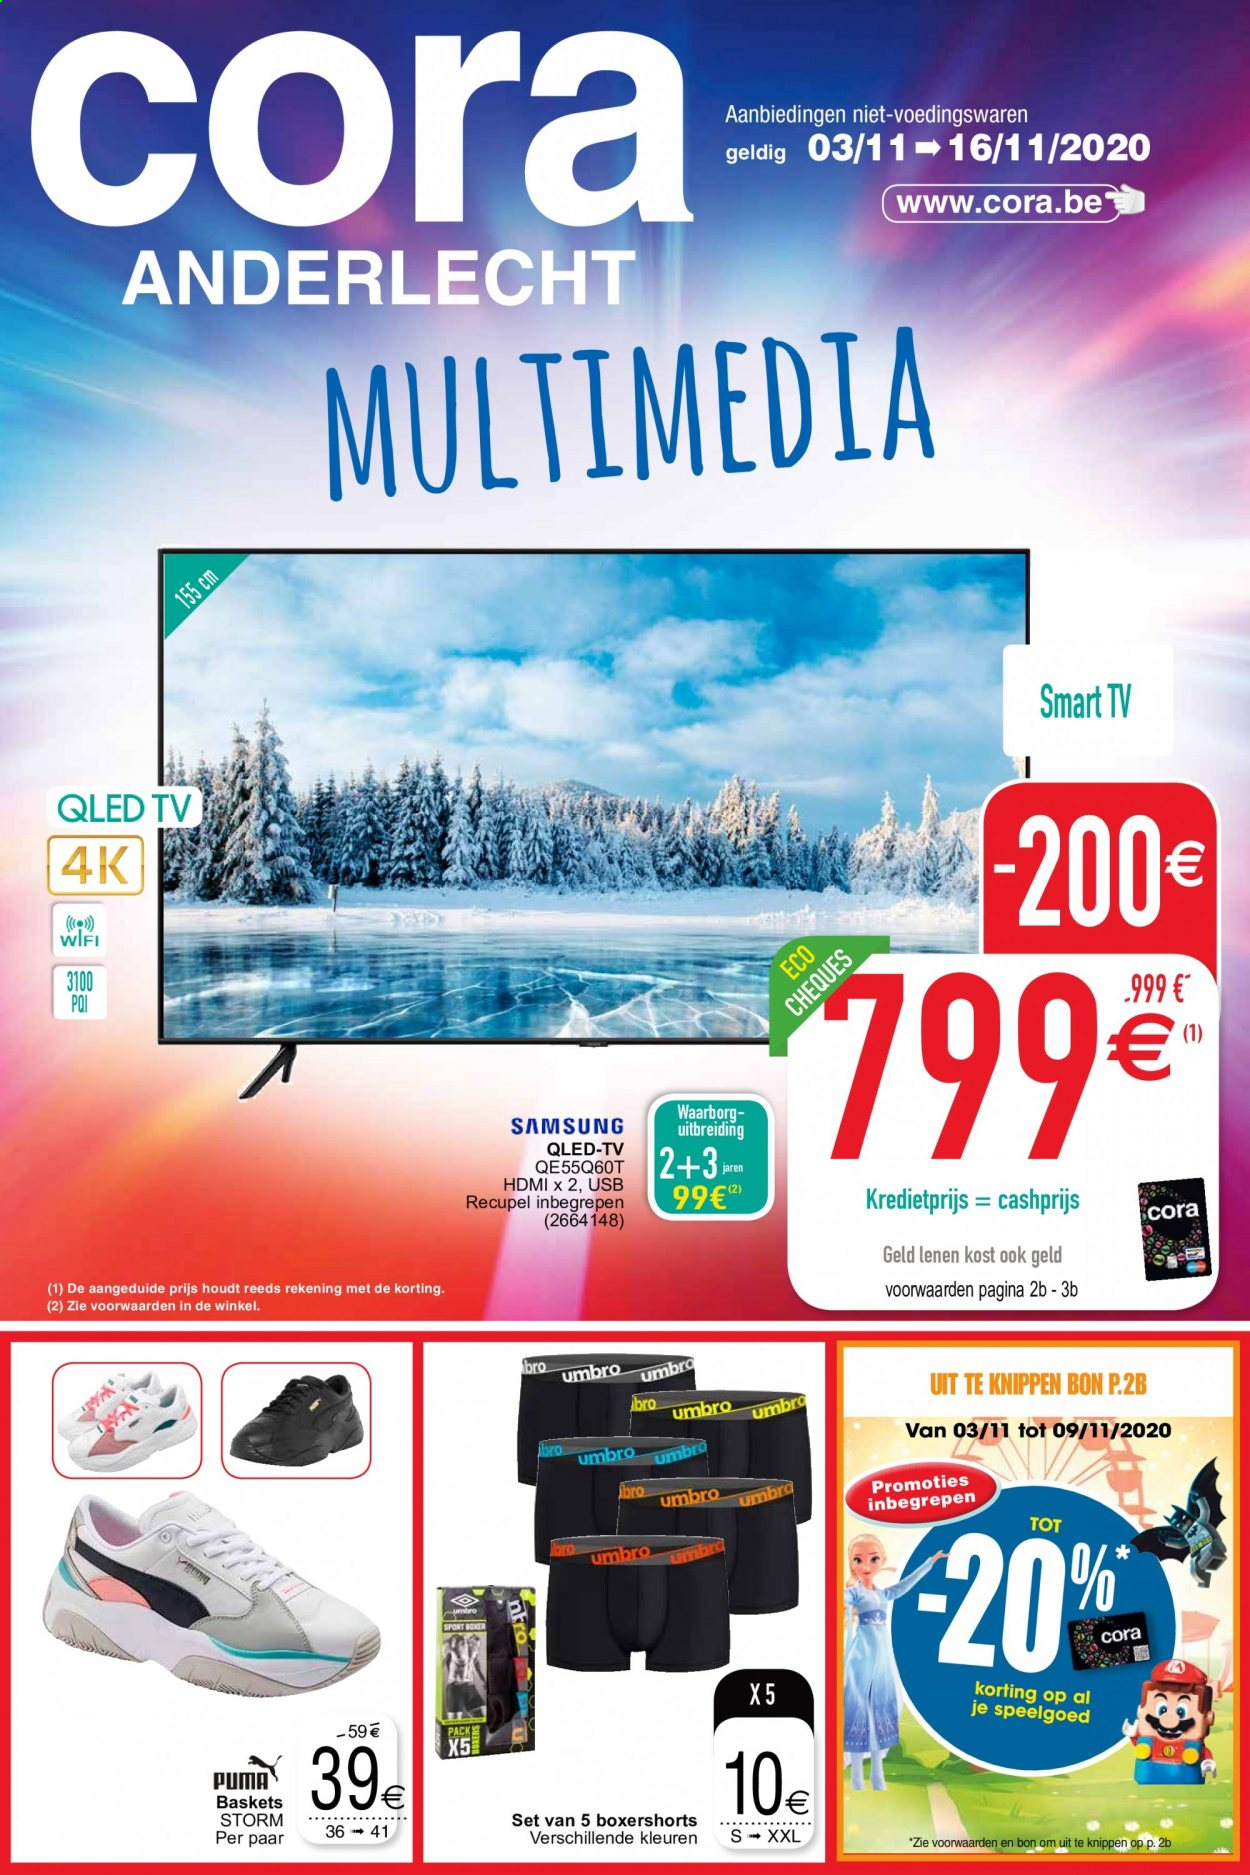 Catalogue Cora - 3.11.2020 - 16.11.2020 - Produits soldés - basket, hdmi, tv qled, umbro, usb, smart tv, puma, samsung. Page 1.